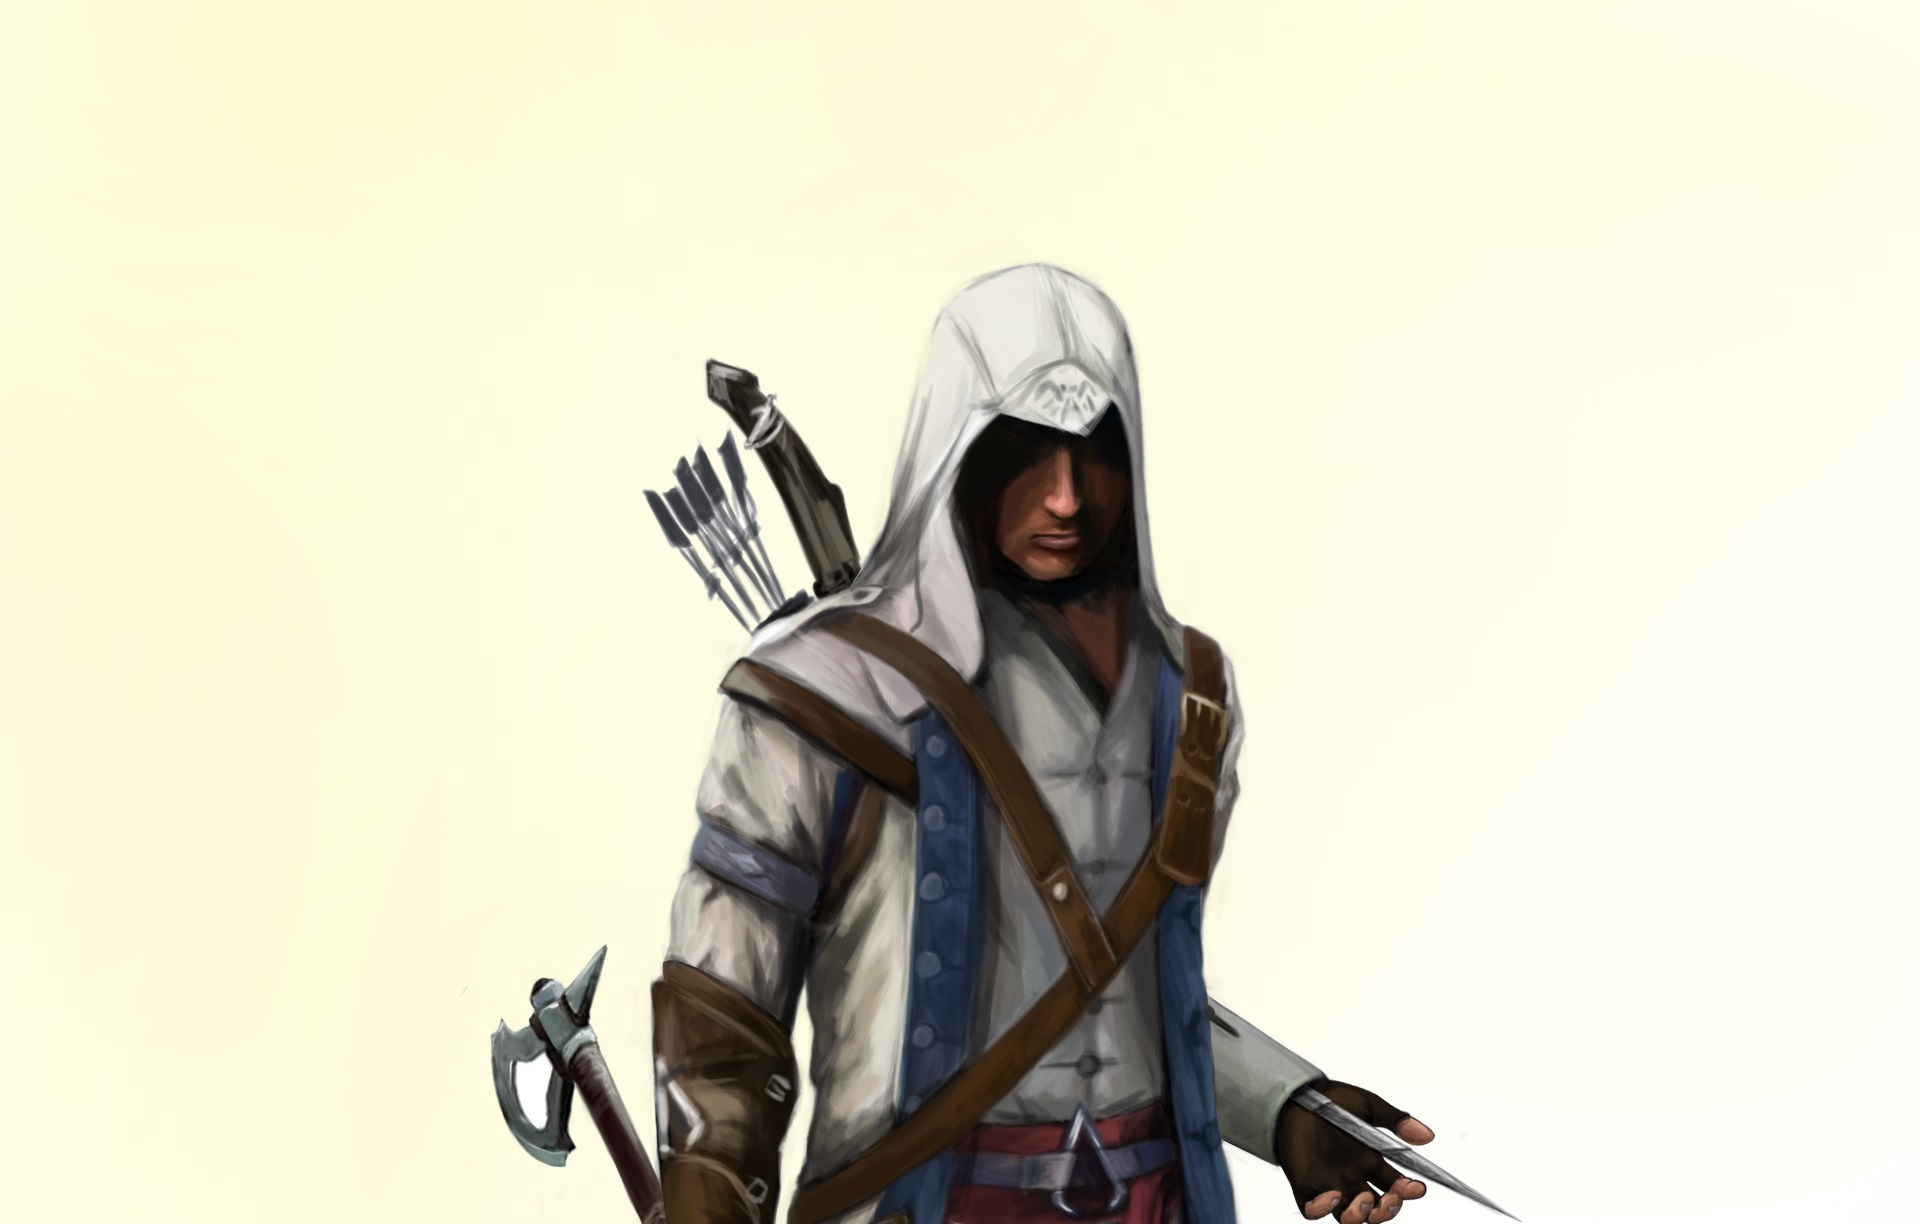 Assassins Creed Warrior Wall Game fantasy r wallpaper background